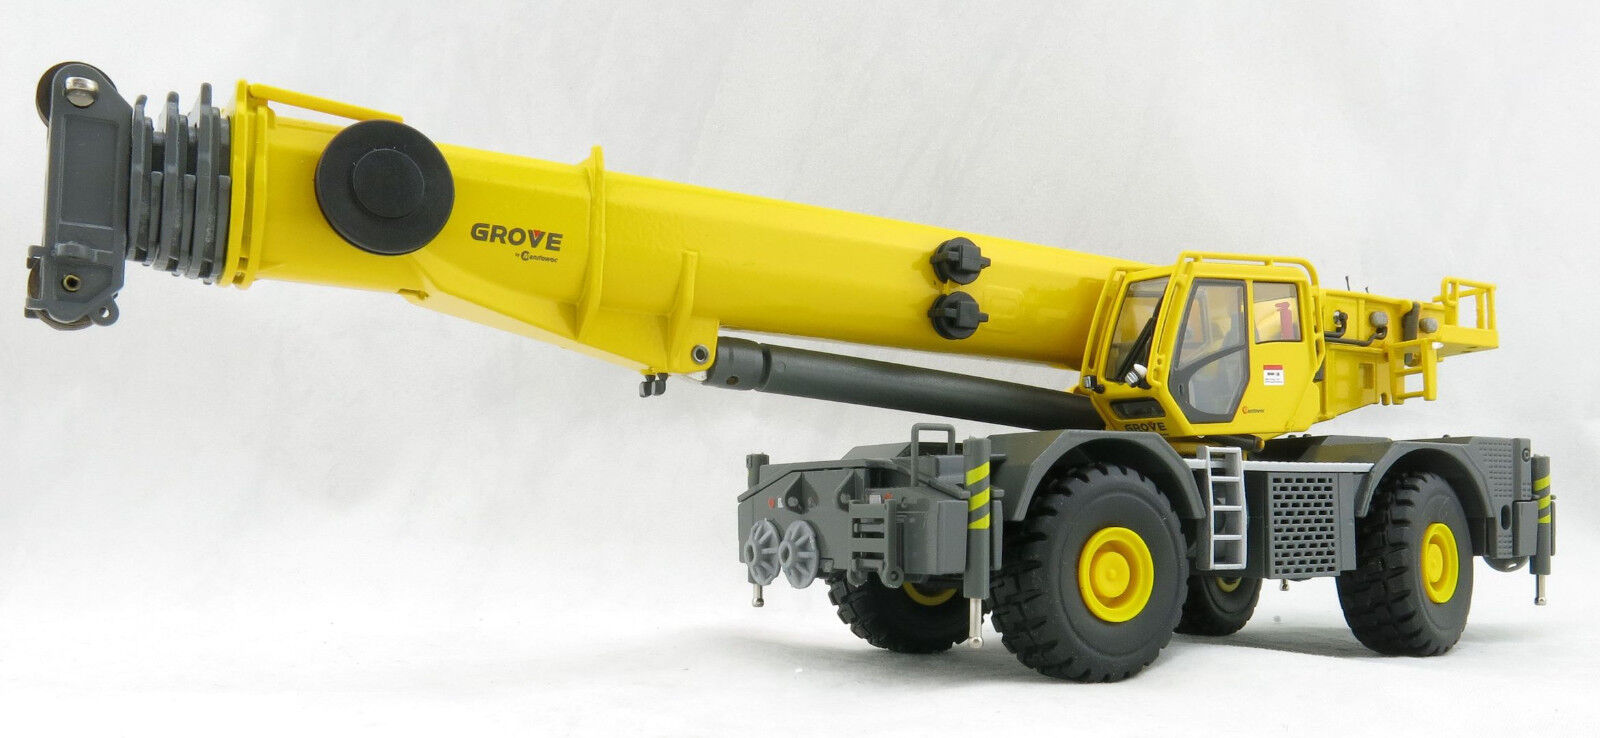 Conrad 2117 0 GROVE GRT 8100 Rough Terrain Mobile Crane - Scale 1 50